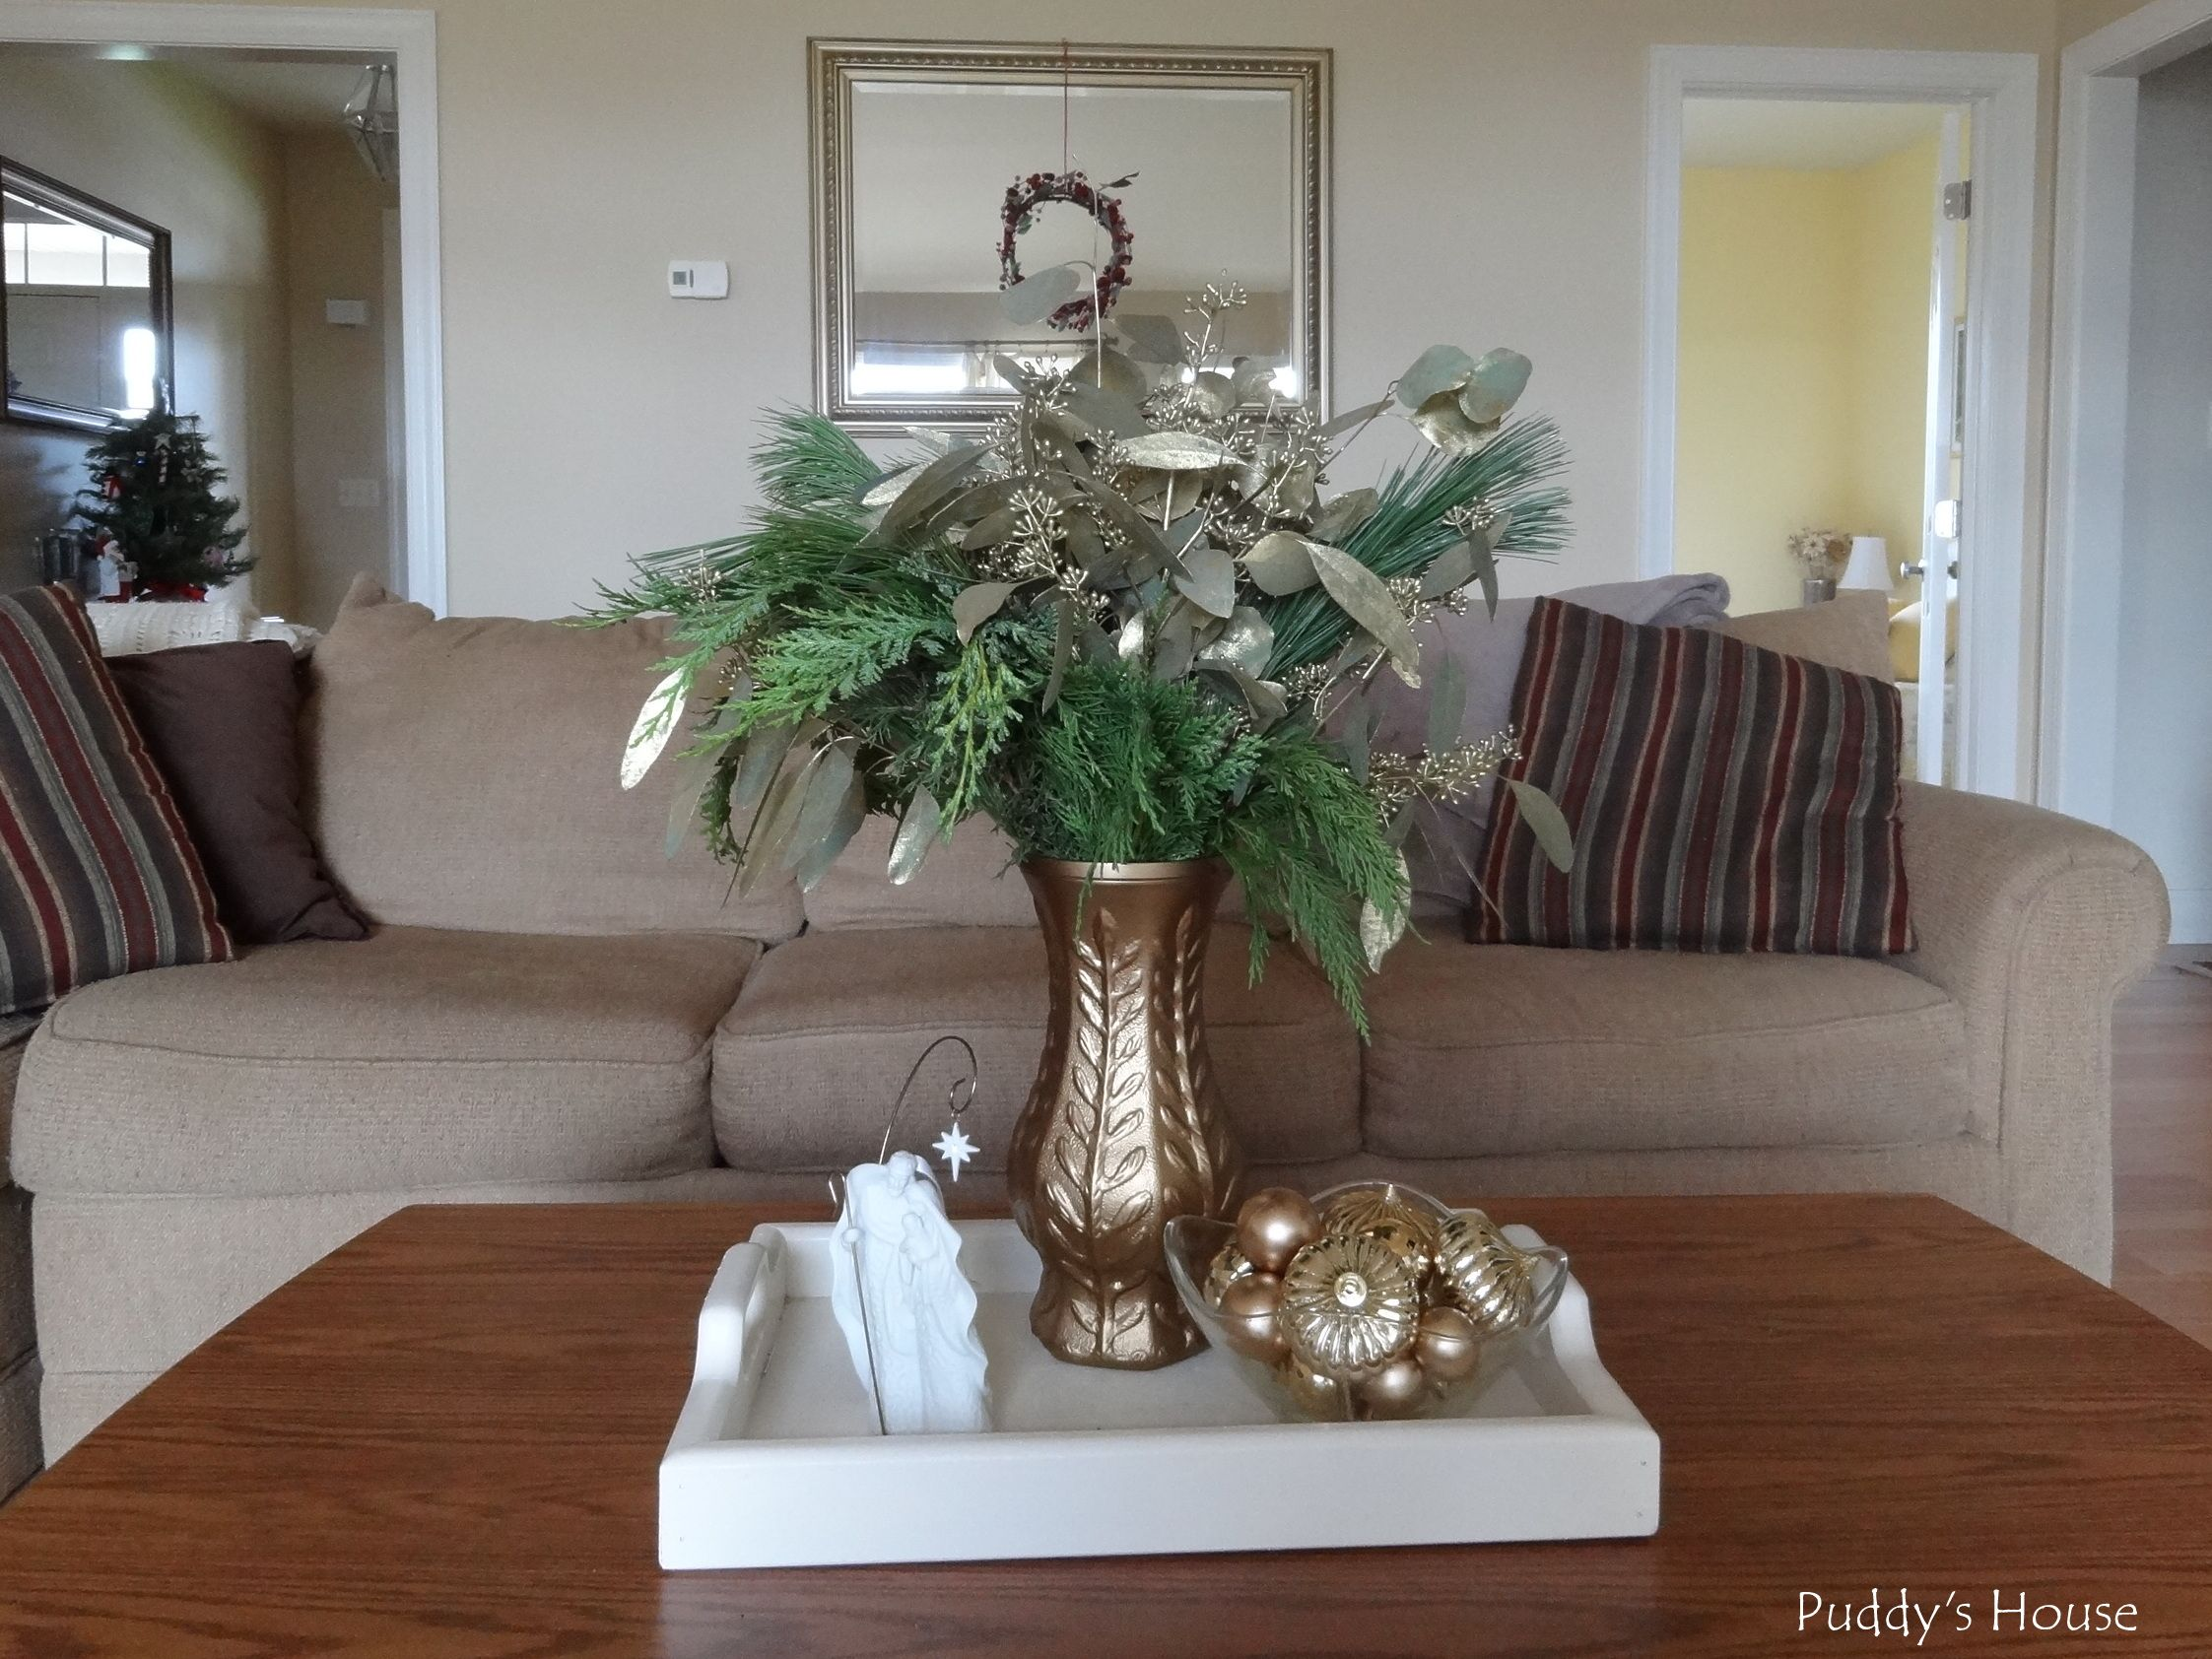 Christmas Greens in Spraypainted vase ornaments wreath on mirror